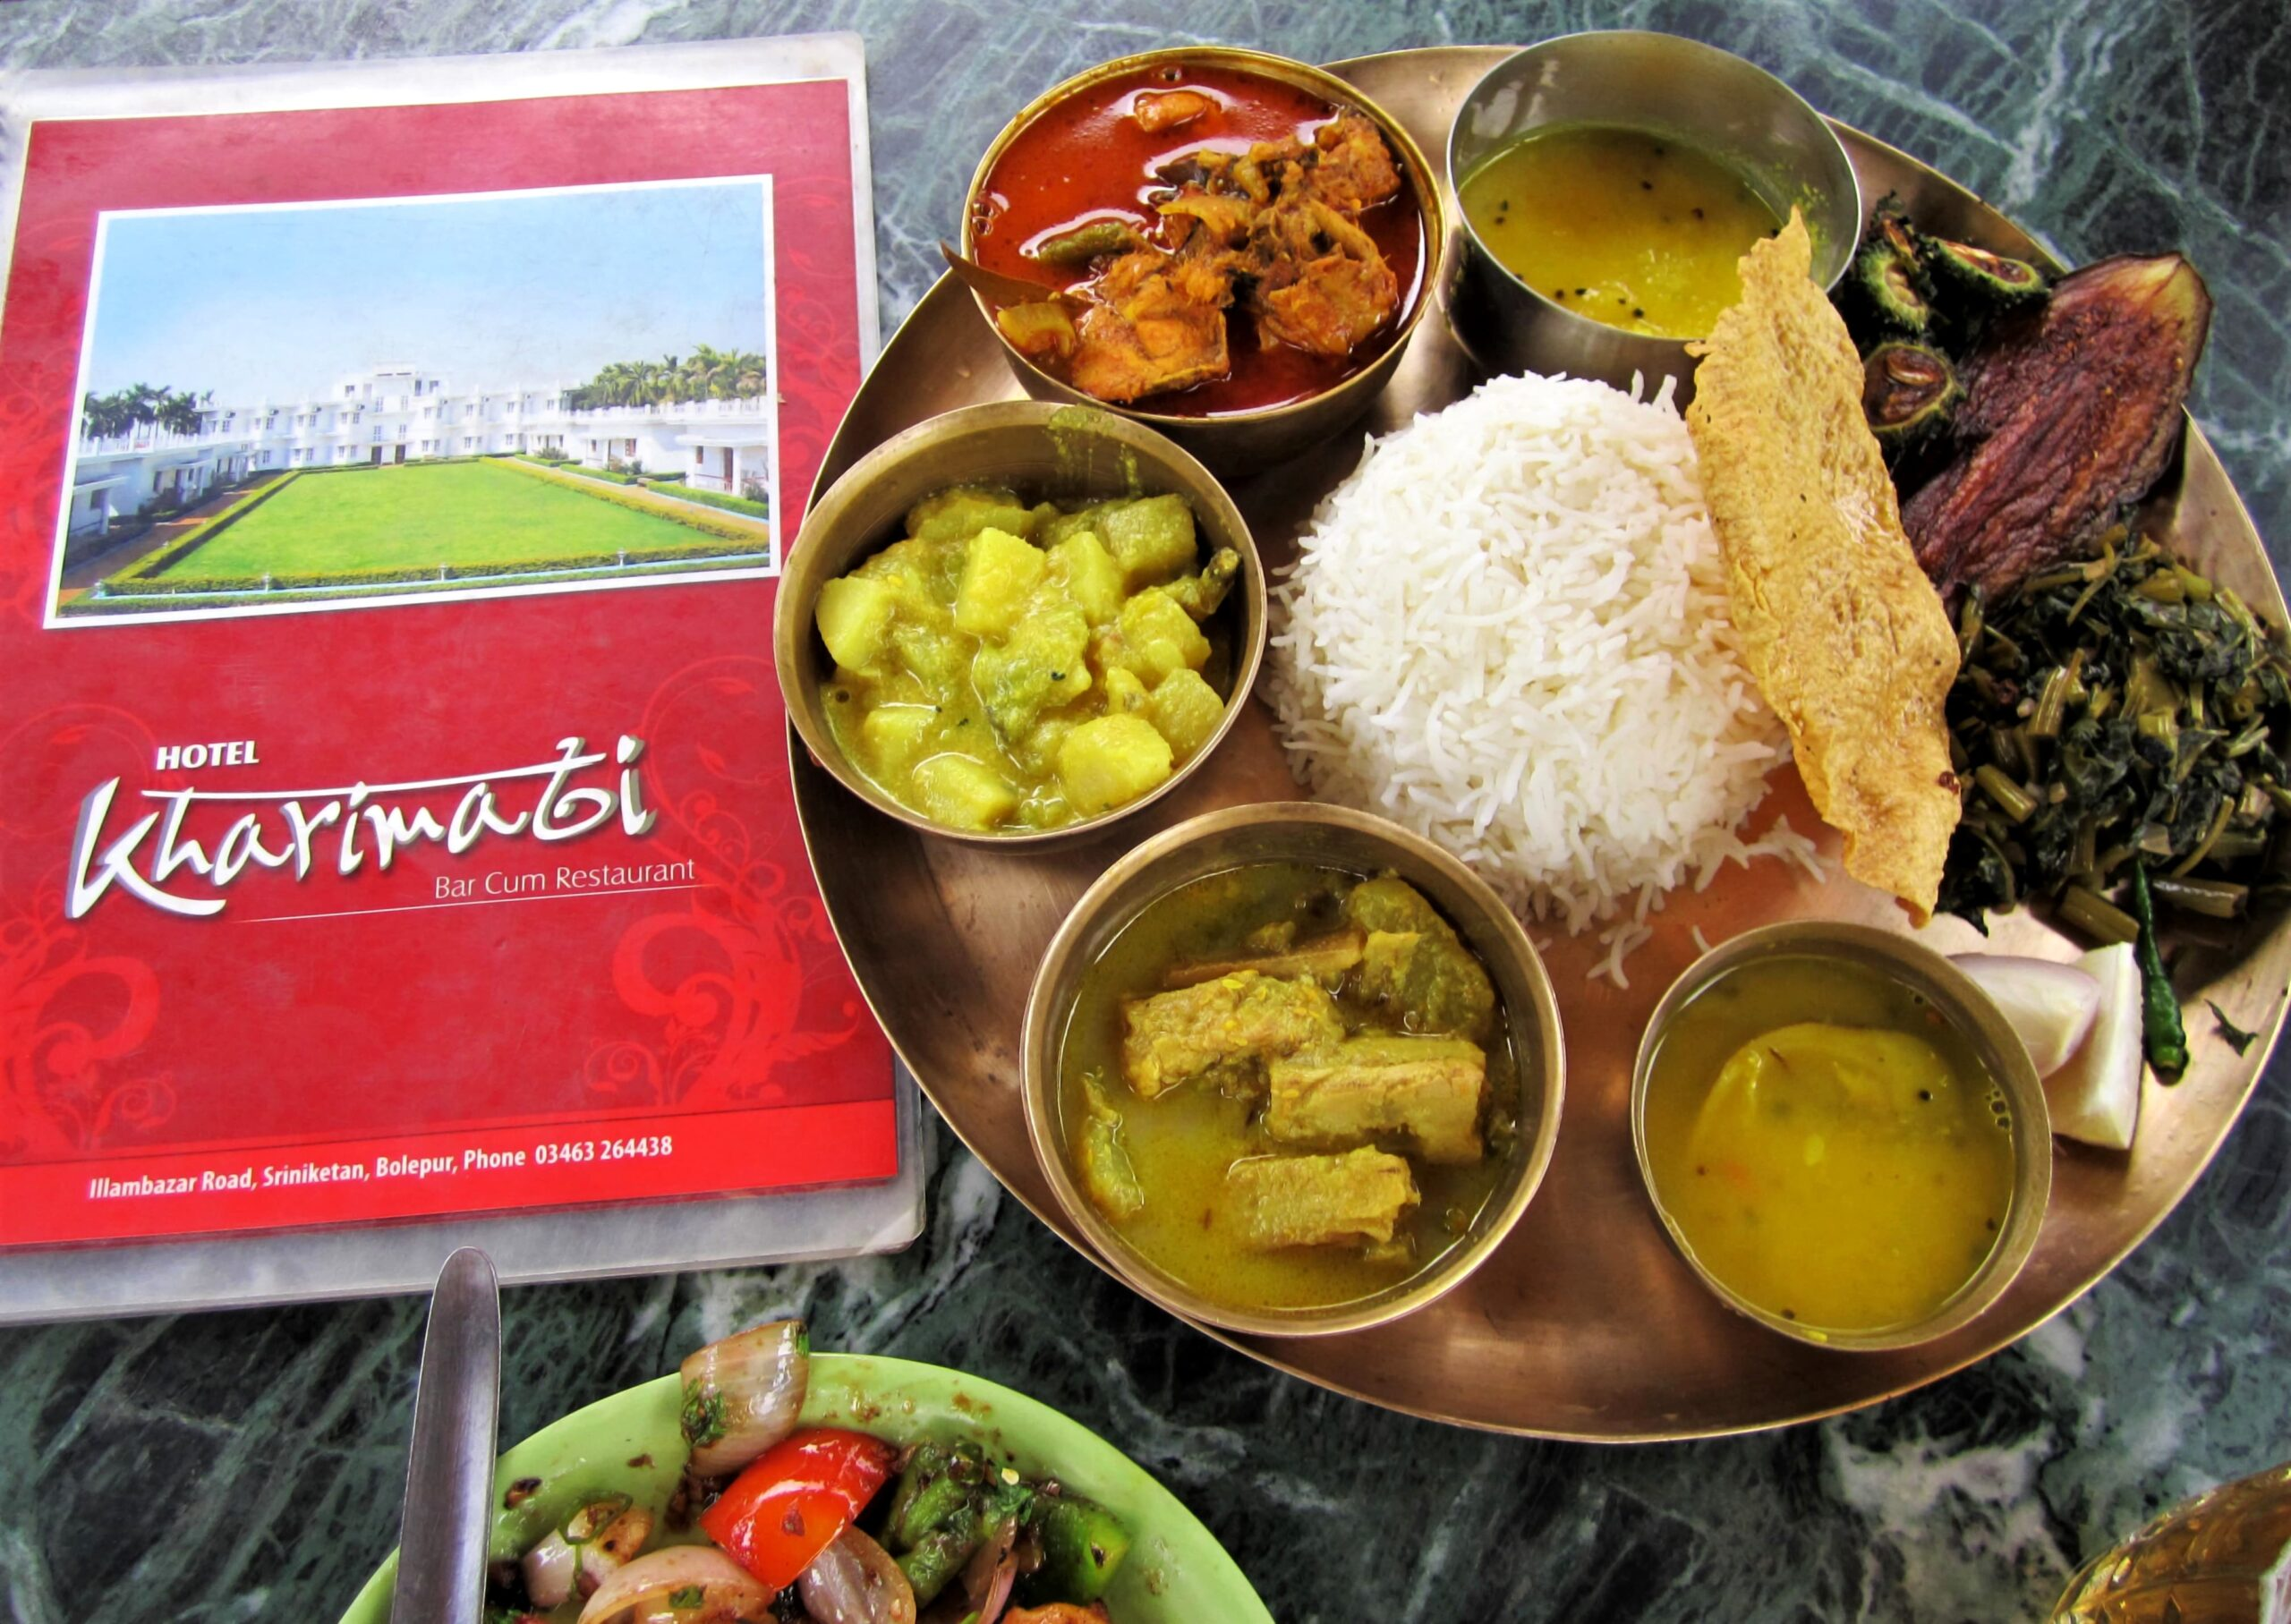 Lunch with traditional Bengali Thali at Kharimati